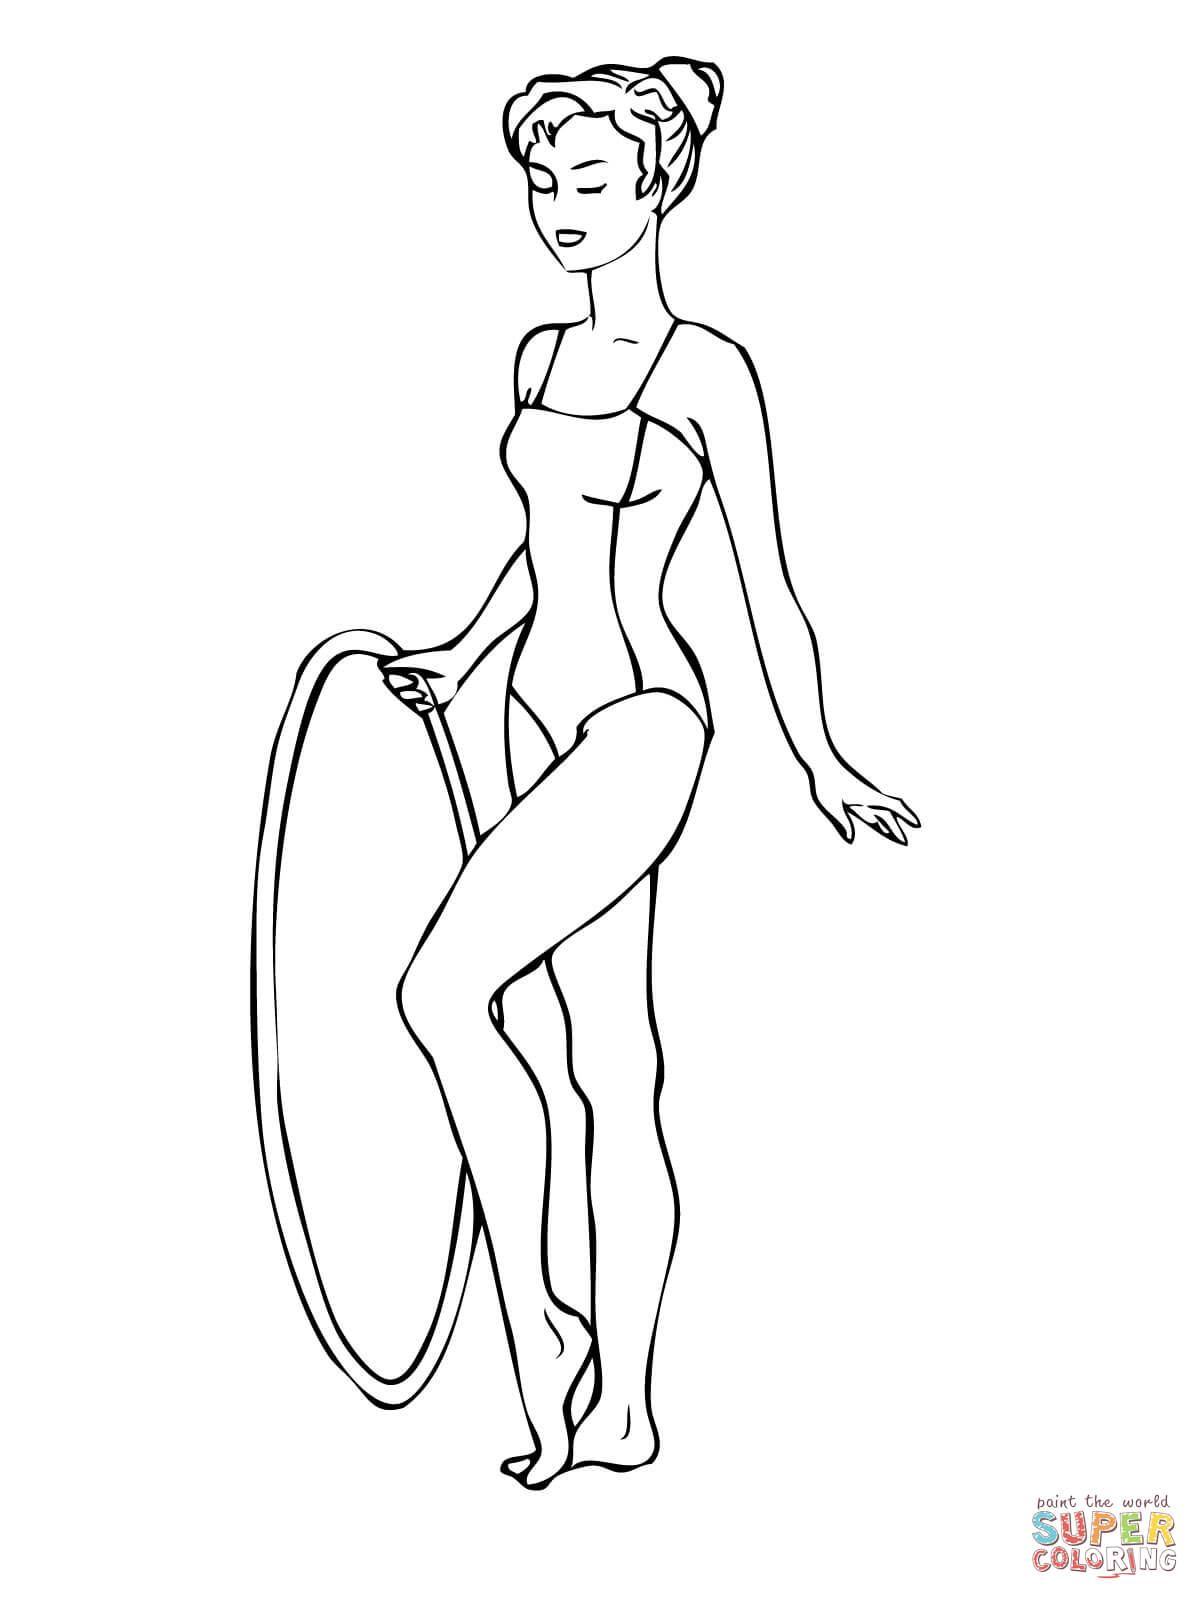 Gymnastics Routine With A Hoop Coloring Page Free Printable